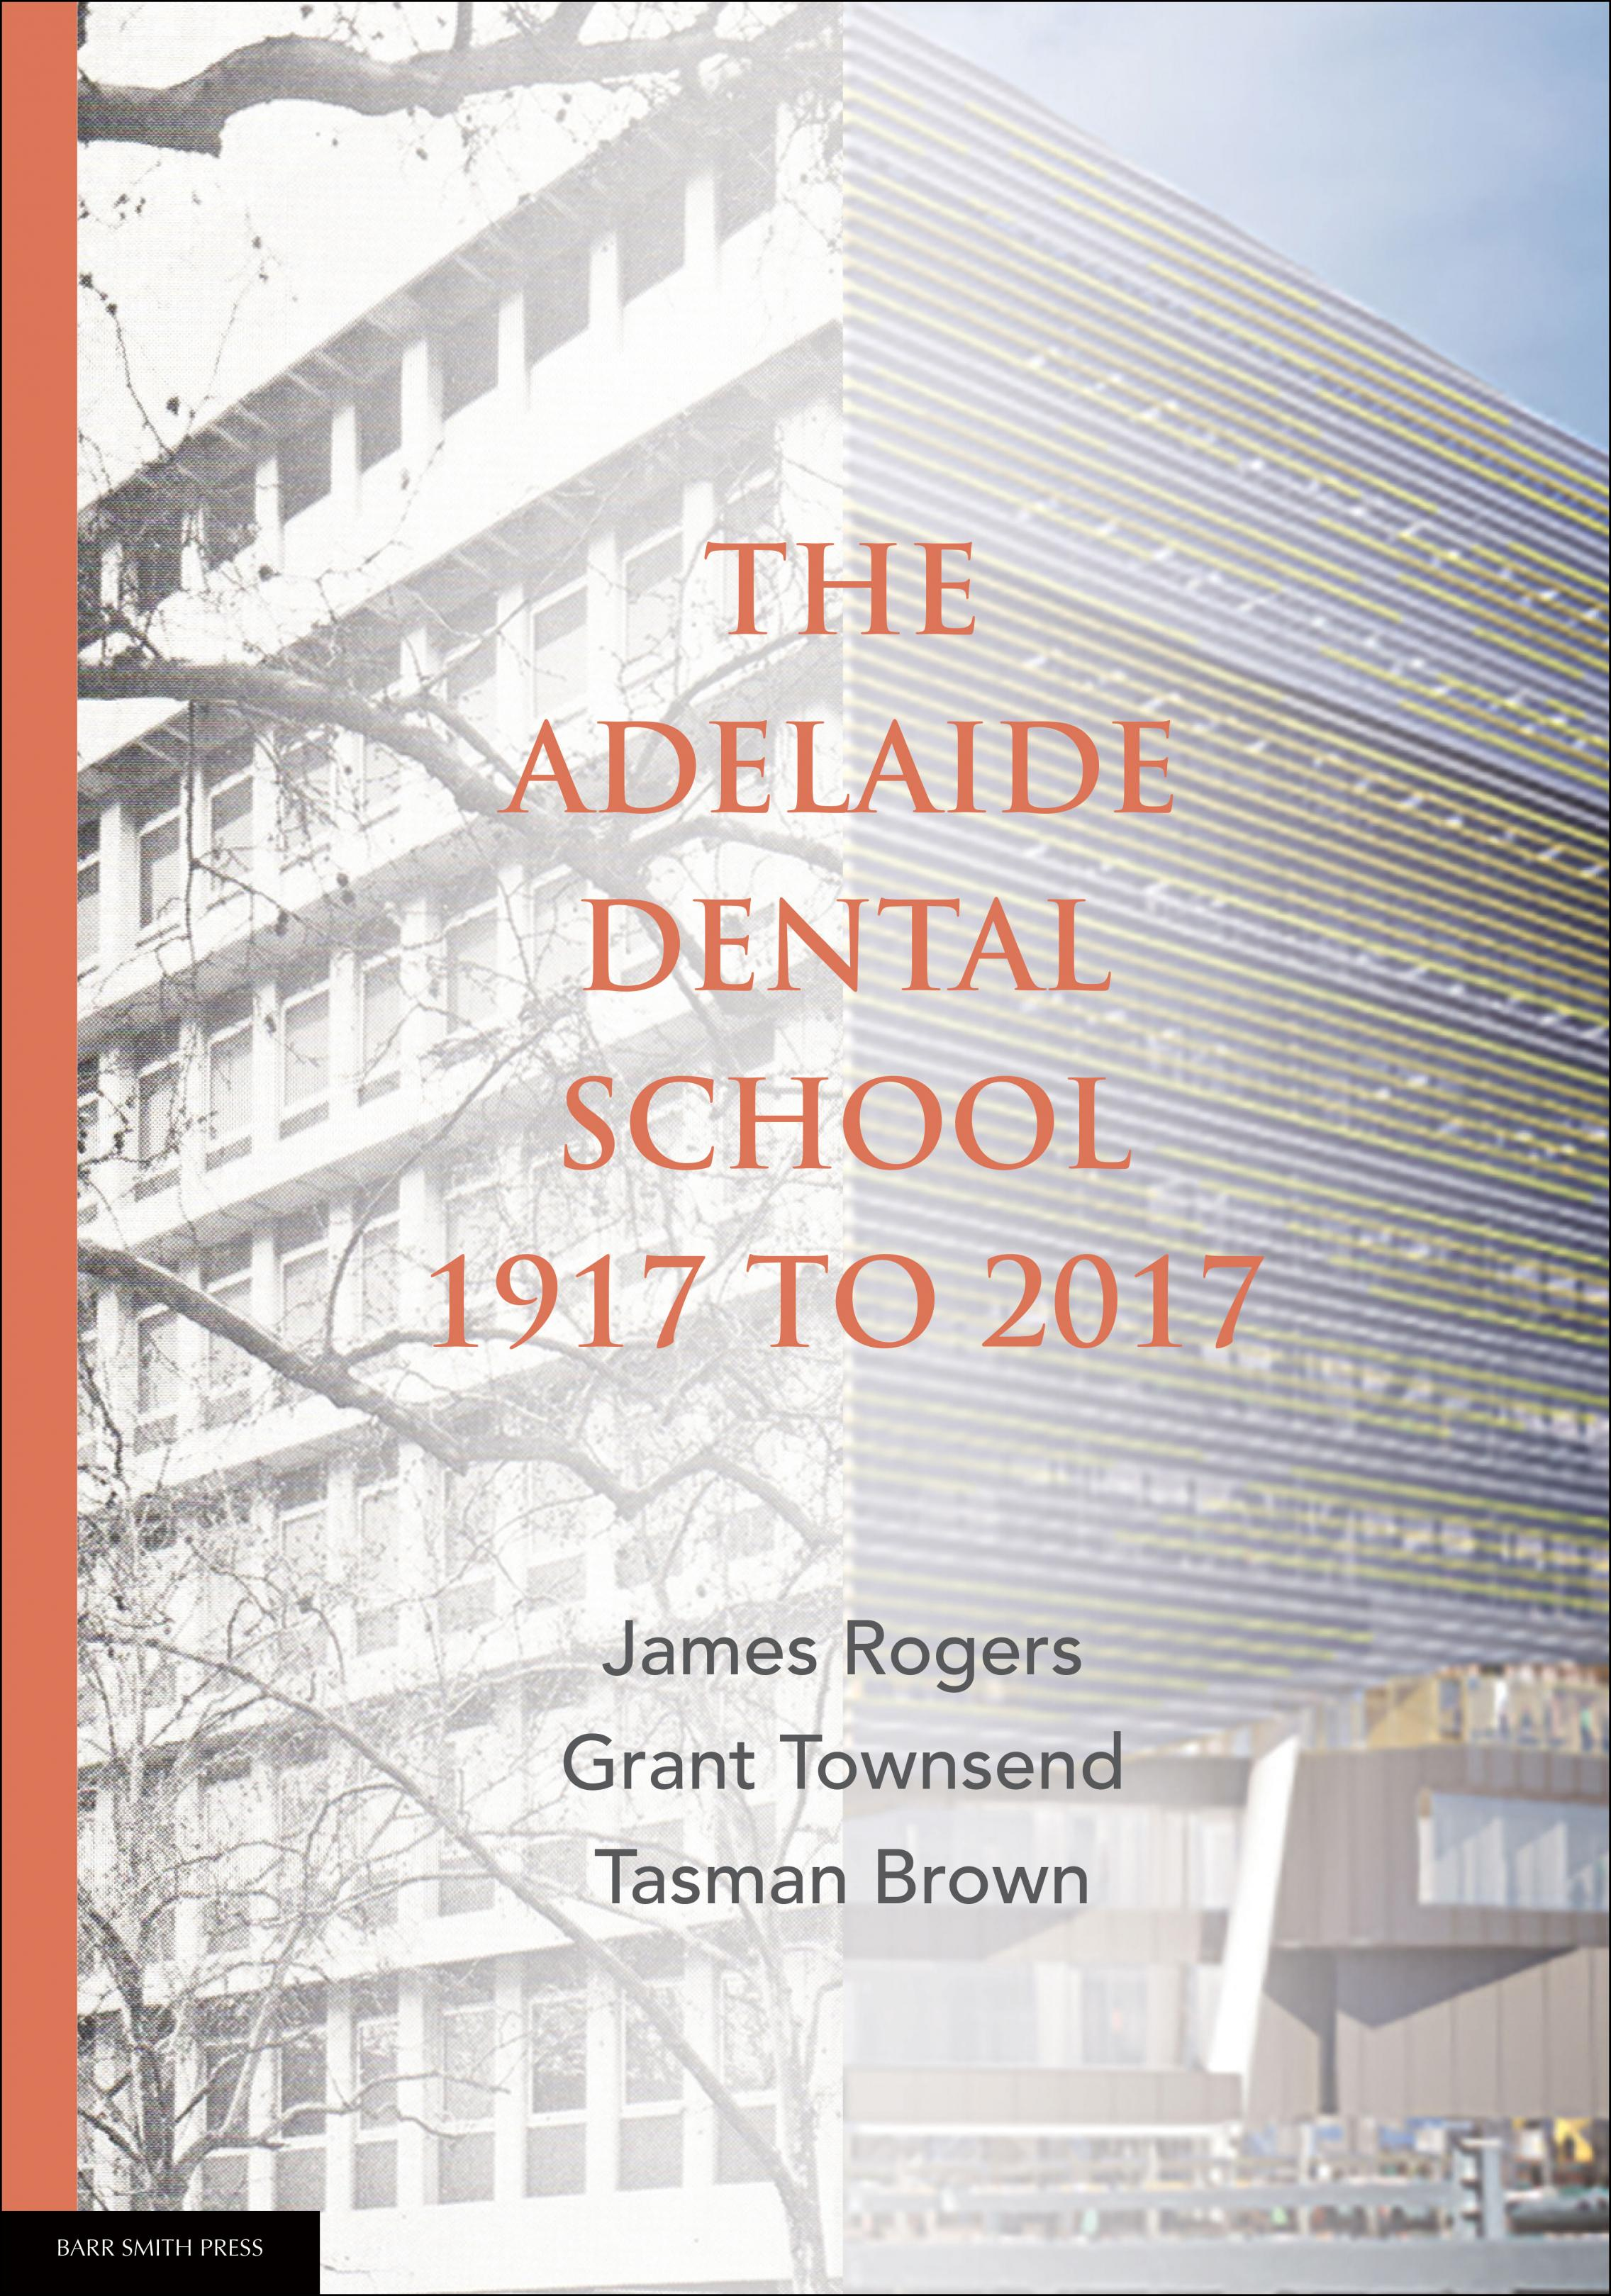 Dental History cover